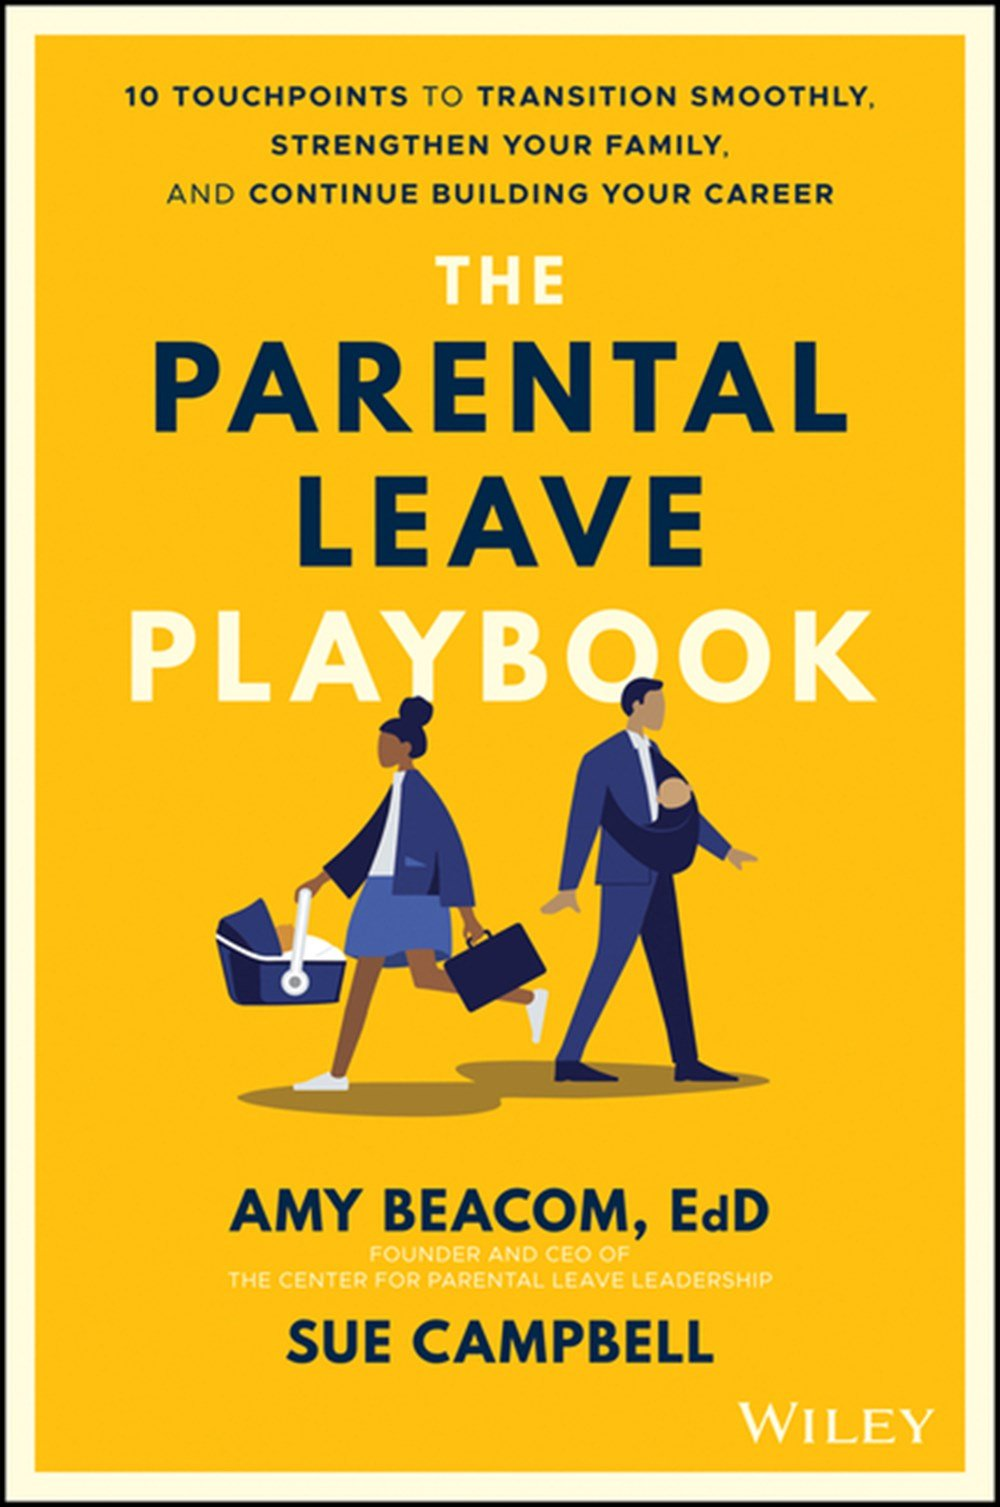 Parental Leave Playbook 10 Touchpoints to Transition Smoothly, Strengthen Your Family, and Continue